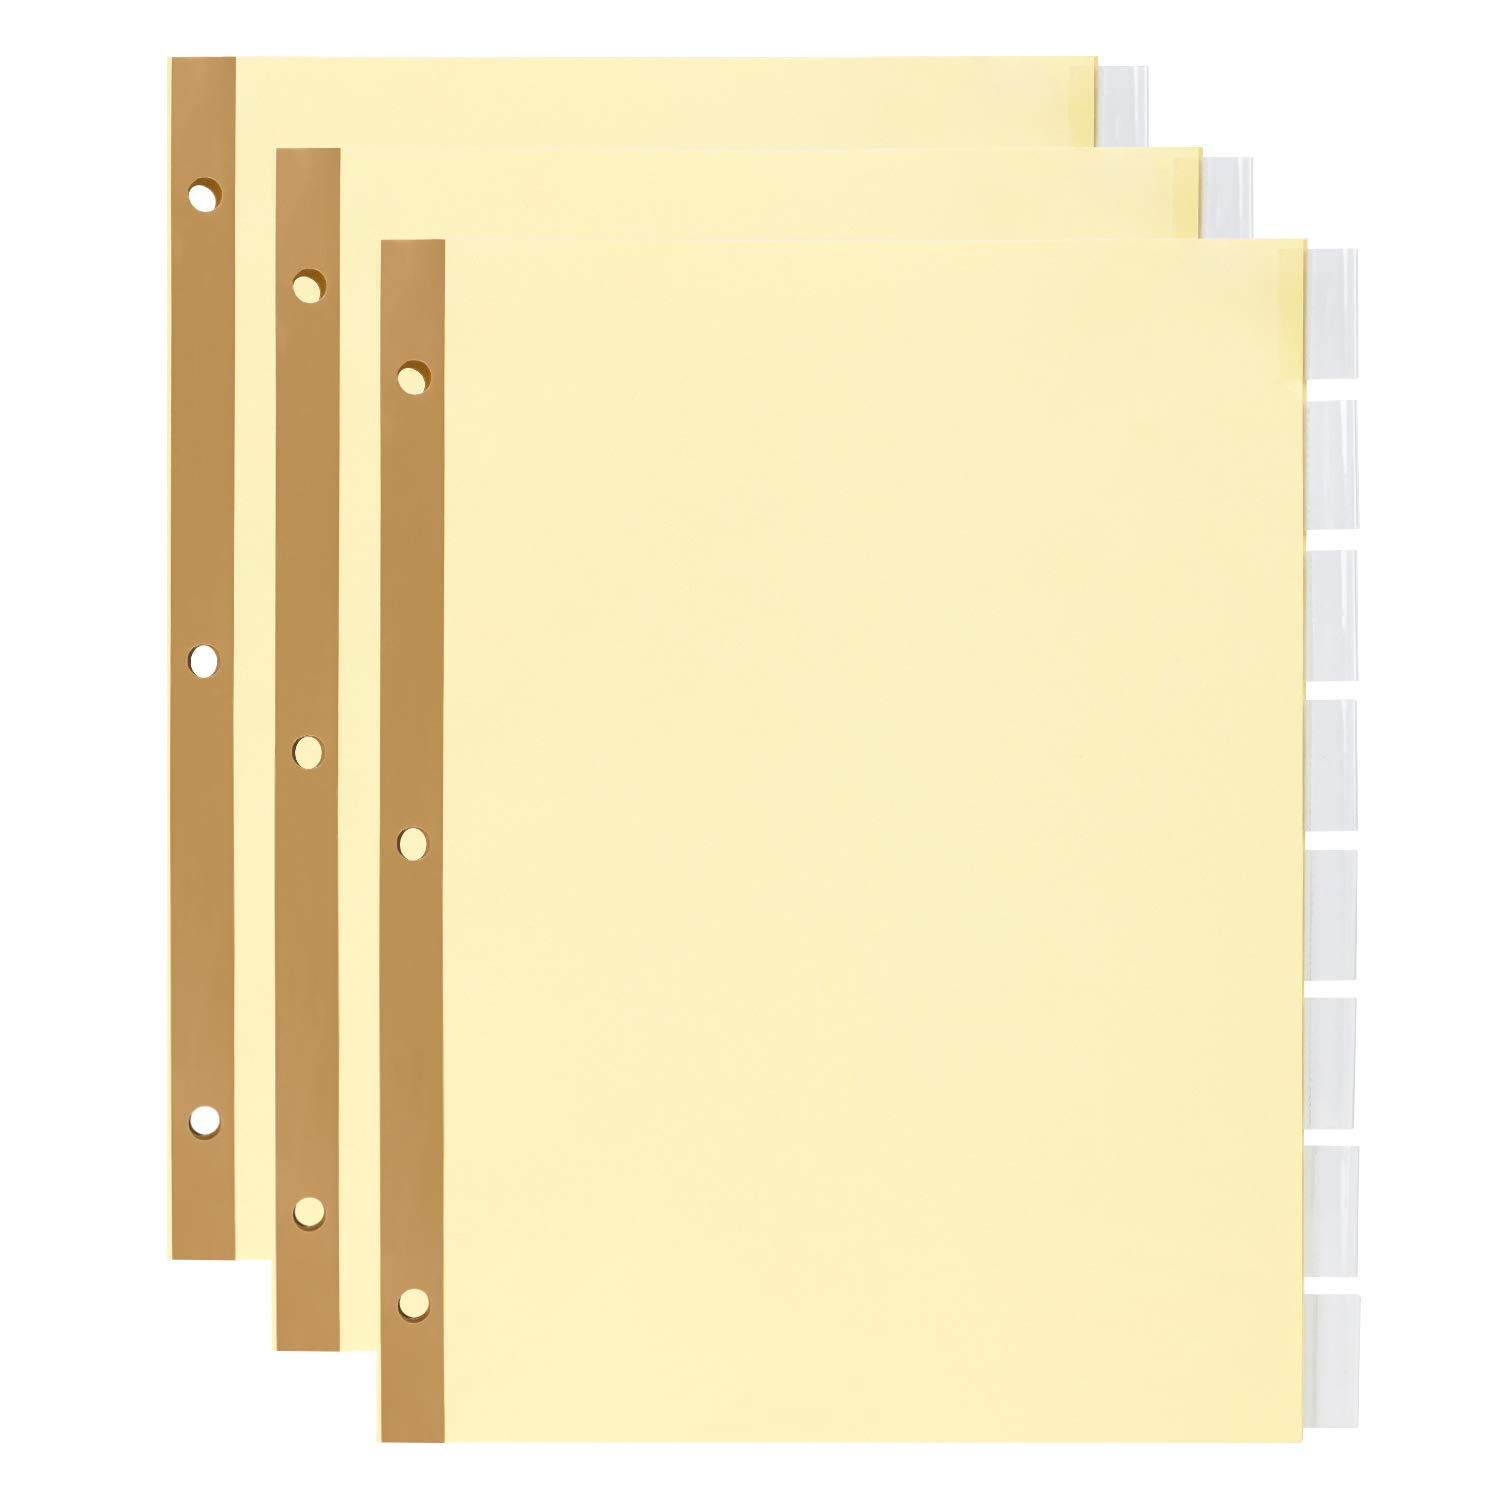 Amazon Basics 8-Tab Binder Dividers, Insertable Clear Tabs, 3 Sets